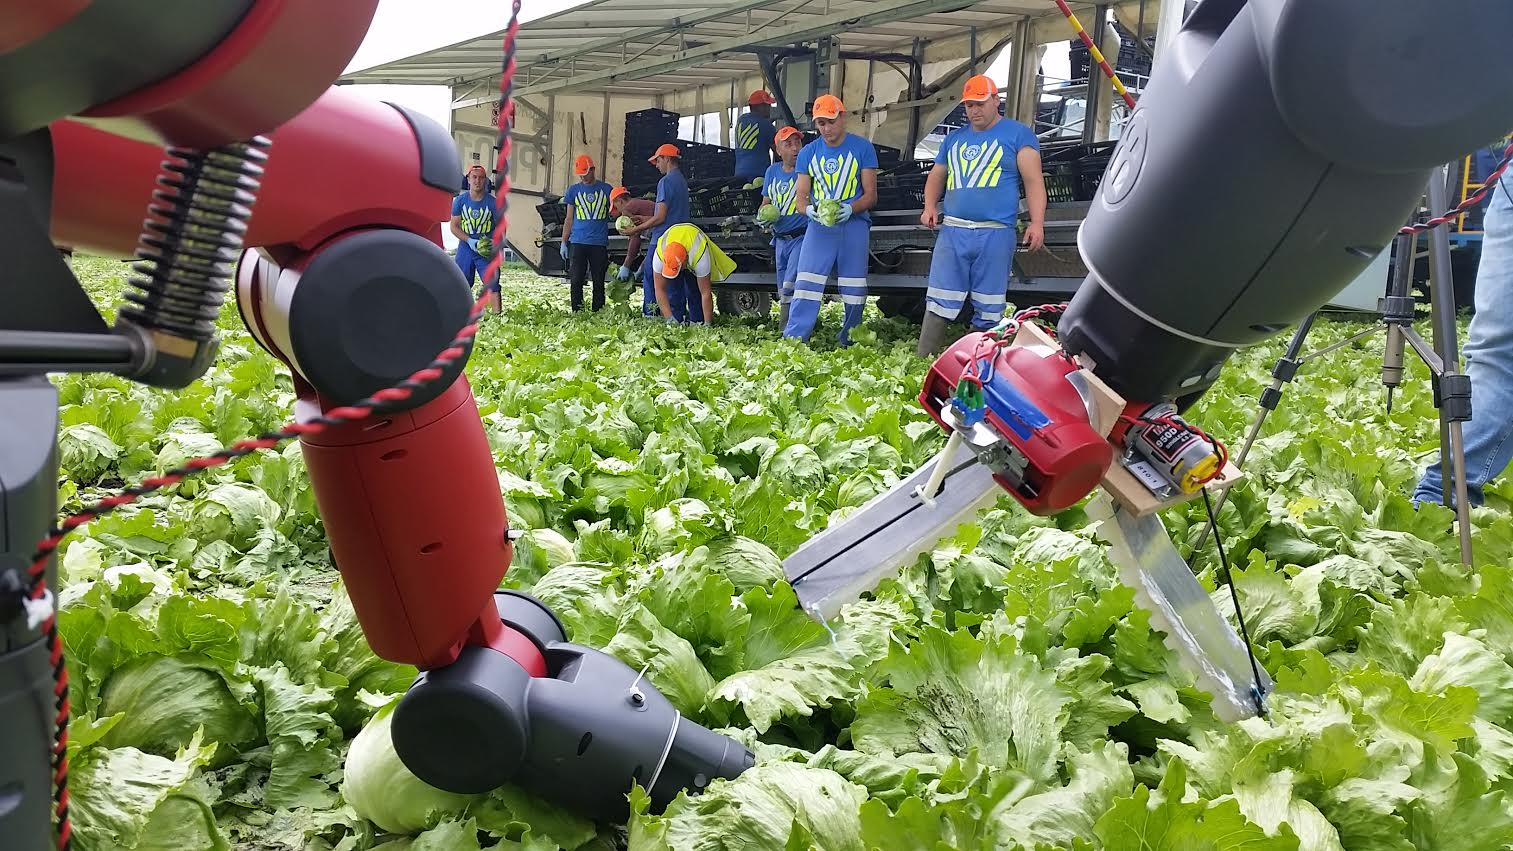 Robots are emerging as agricultural co-workers